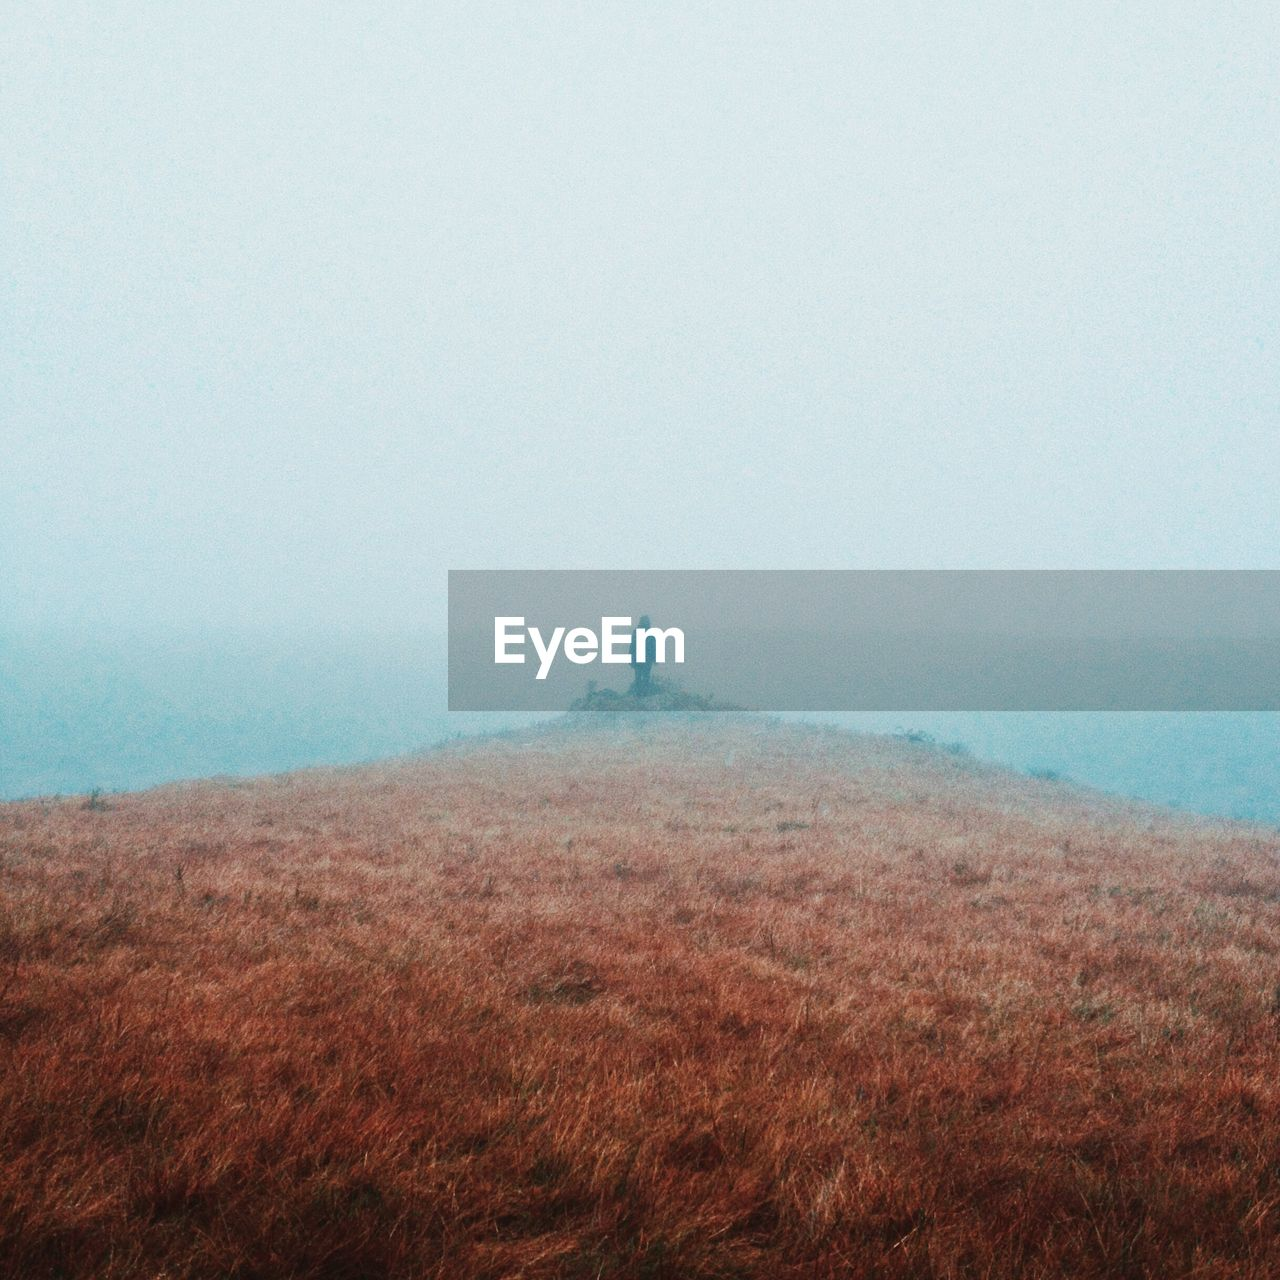 fog, nature, scenics, landscape, tranquility, tranquil scene, day, foggy, beauty in nature, outdoors, idyllic, field, sea, horizon over water, sky, no people